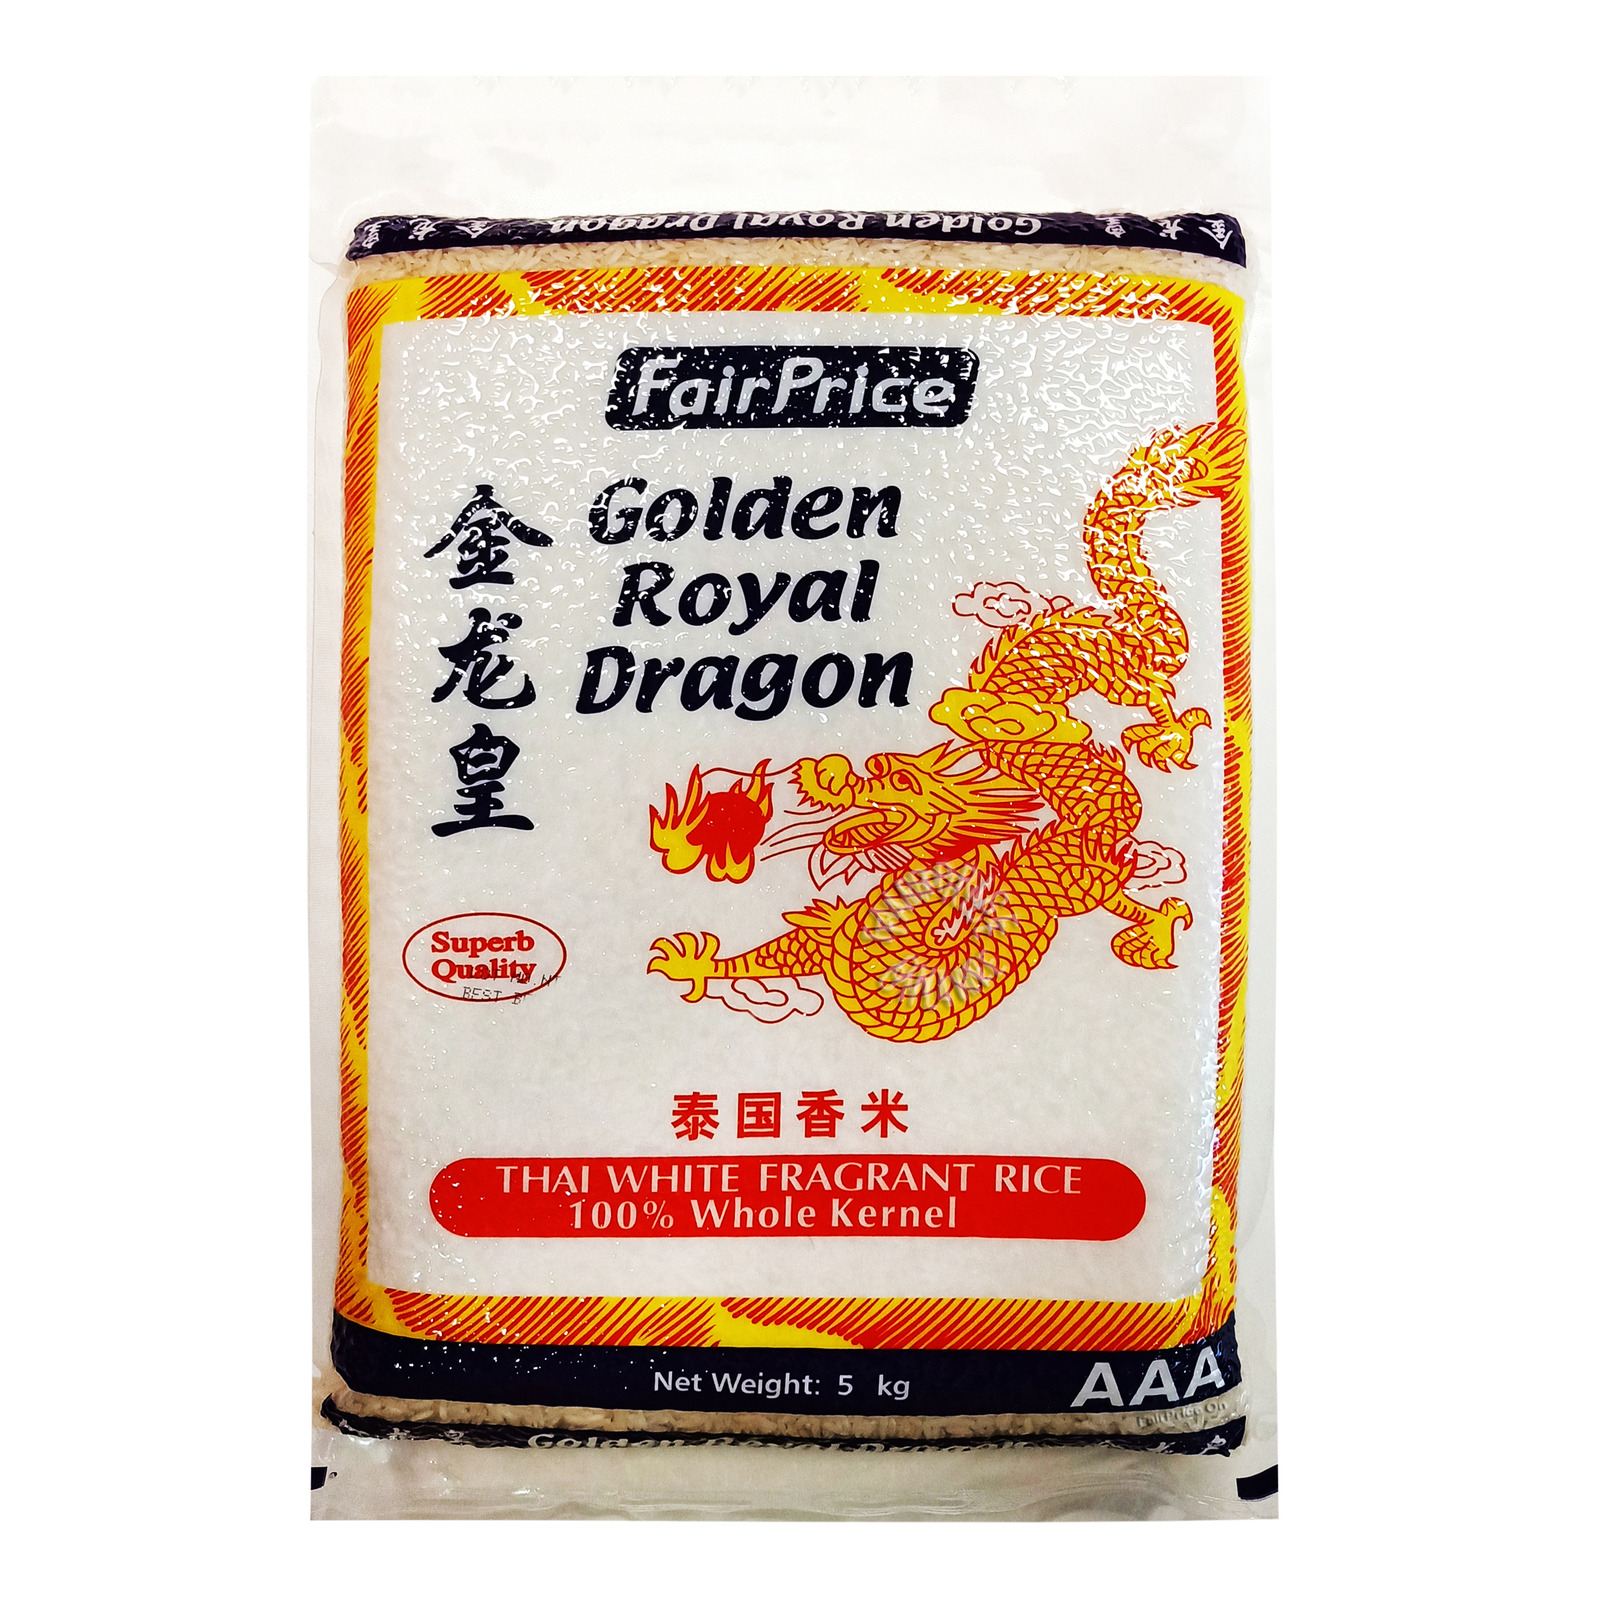 FairPrice AAA Golden Royal Dragon Thai White Fragrant Rice